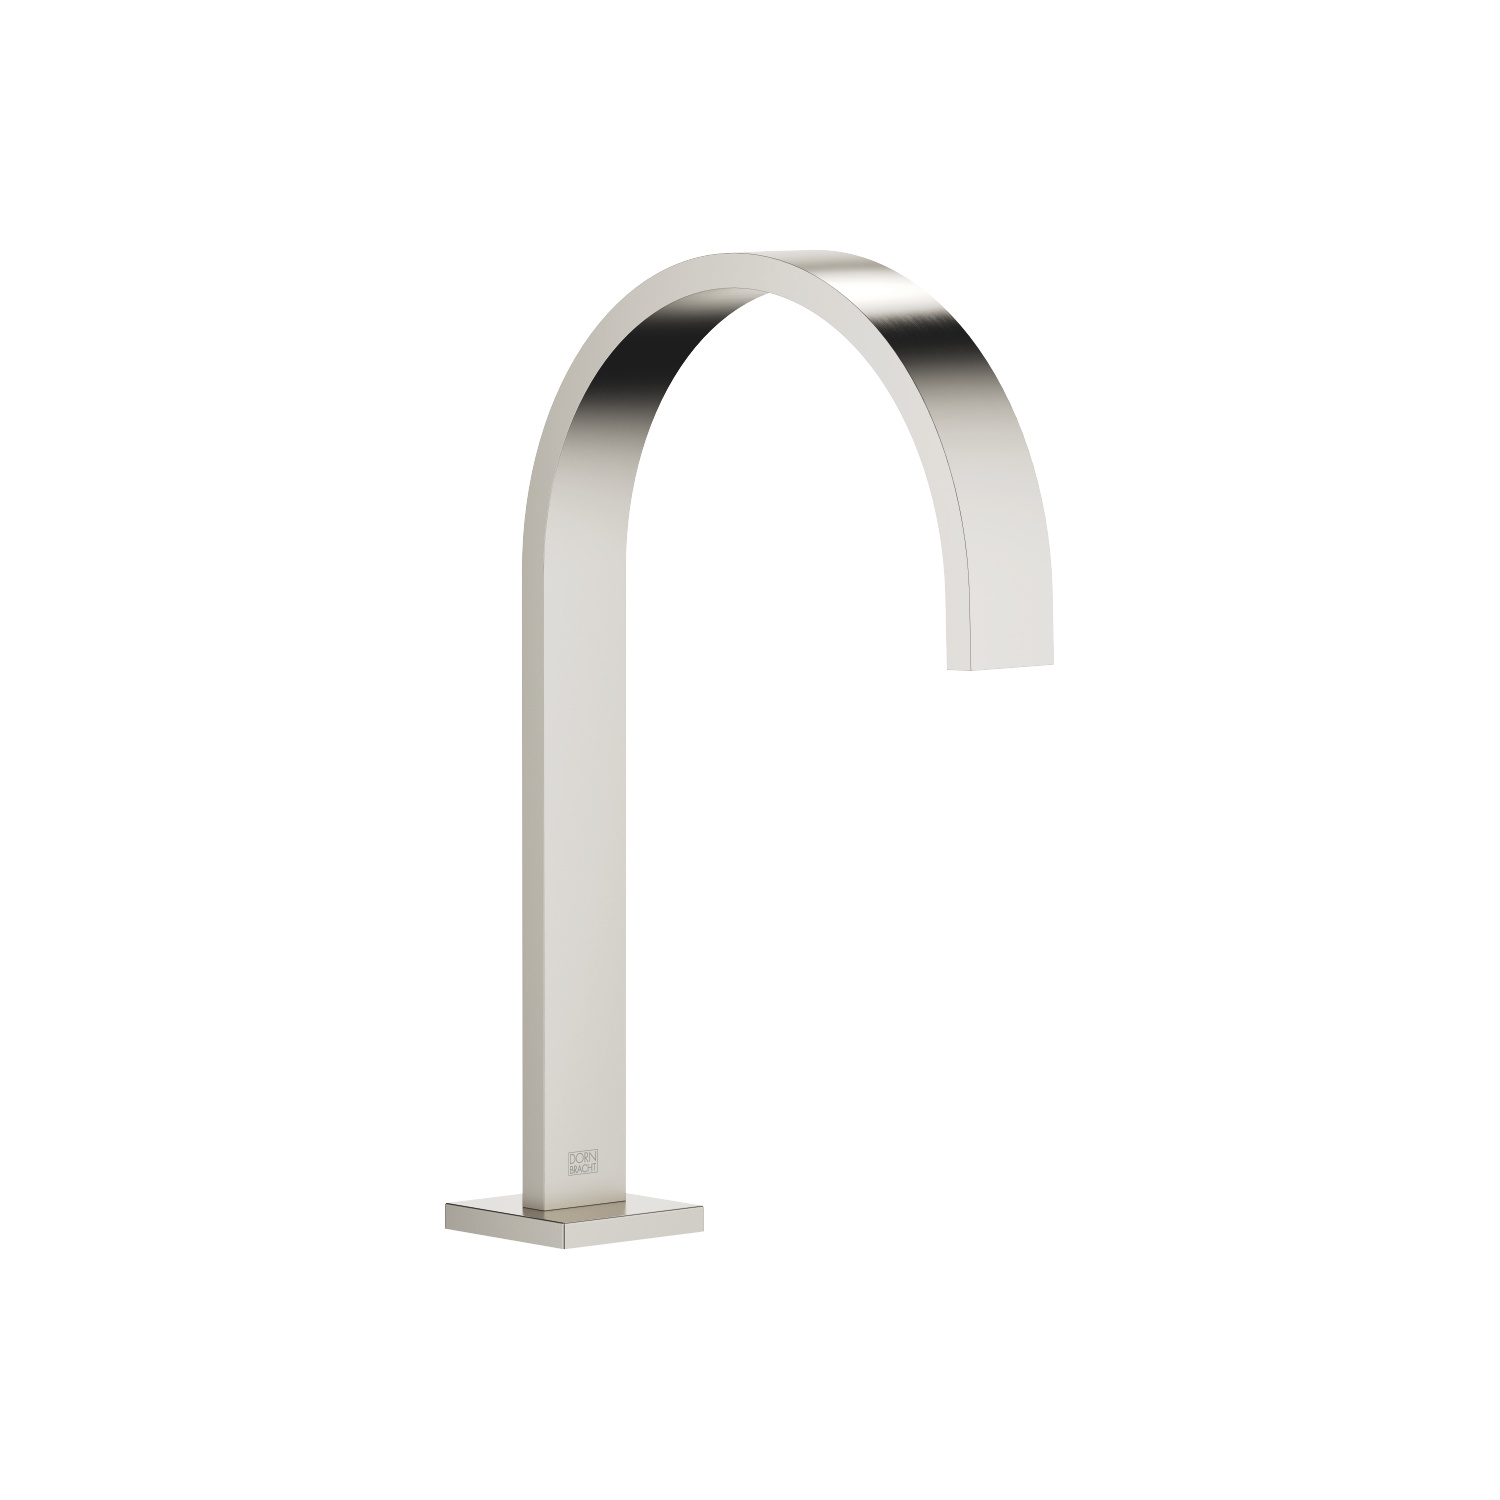 Deck-mounted basin spout with pop-up waste - platinum matt - 13 715 782-06